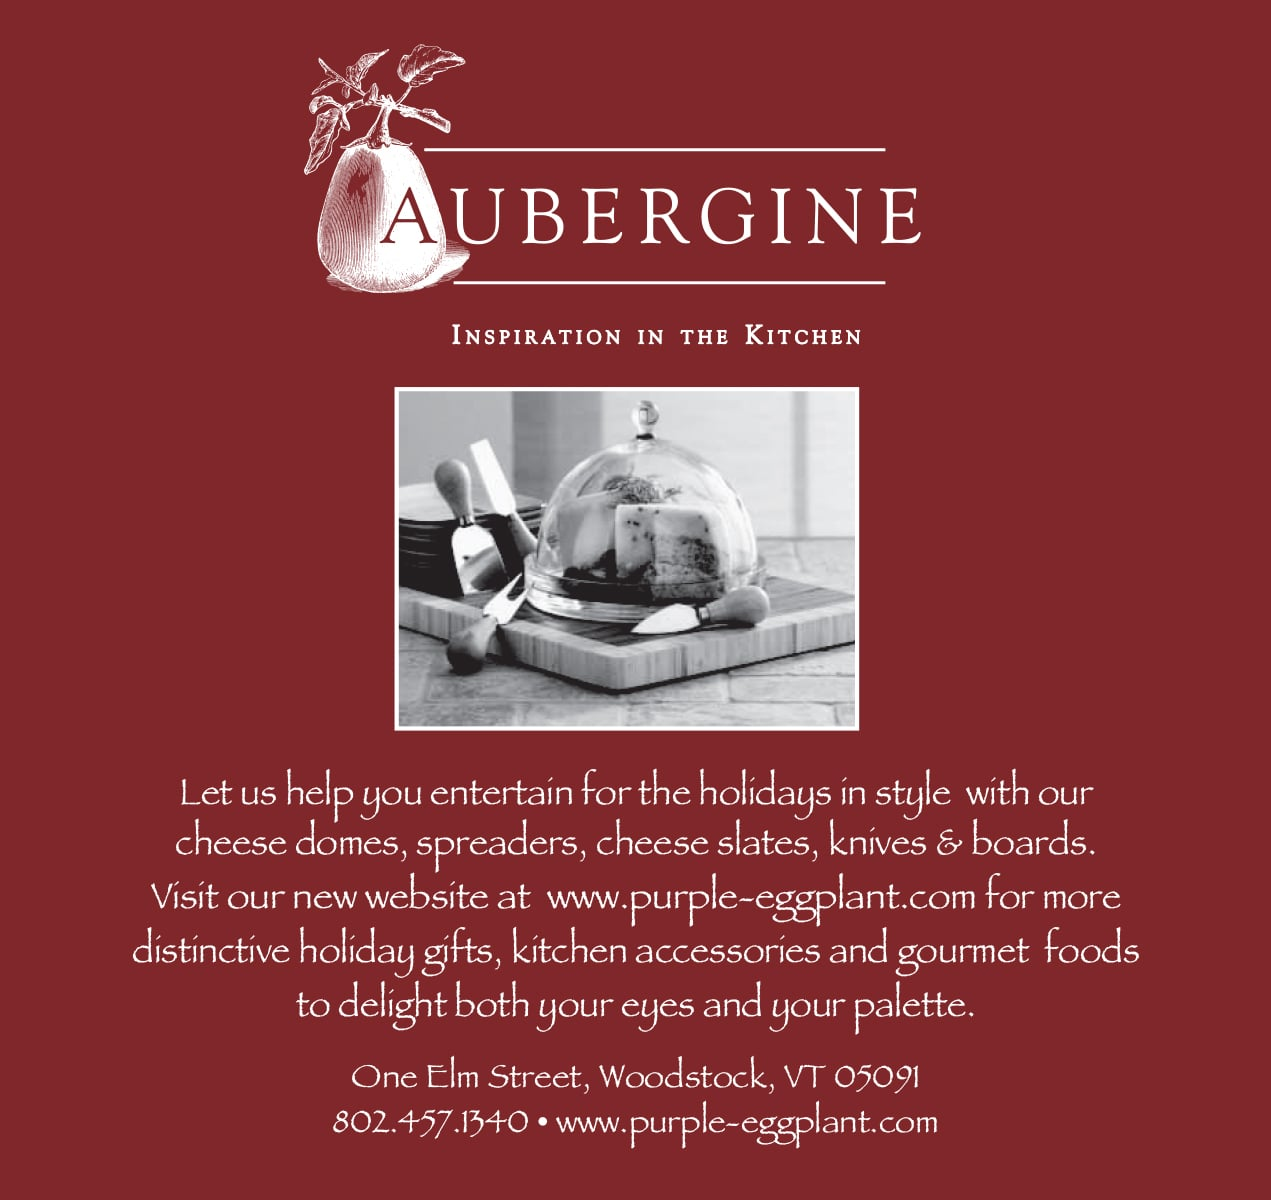 Print Ad for Aubergine Kitchen Store